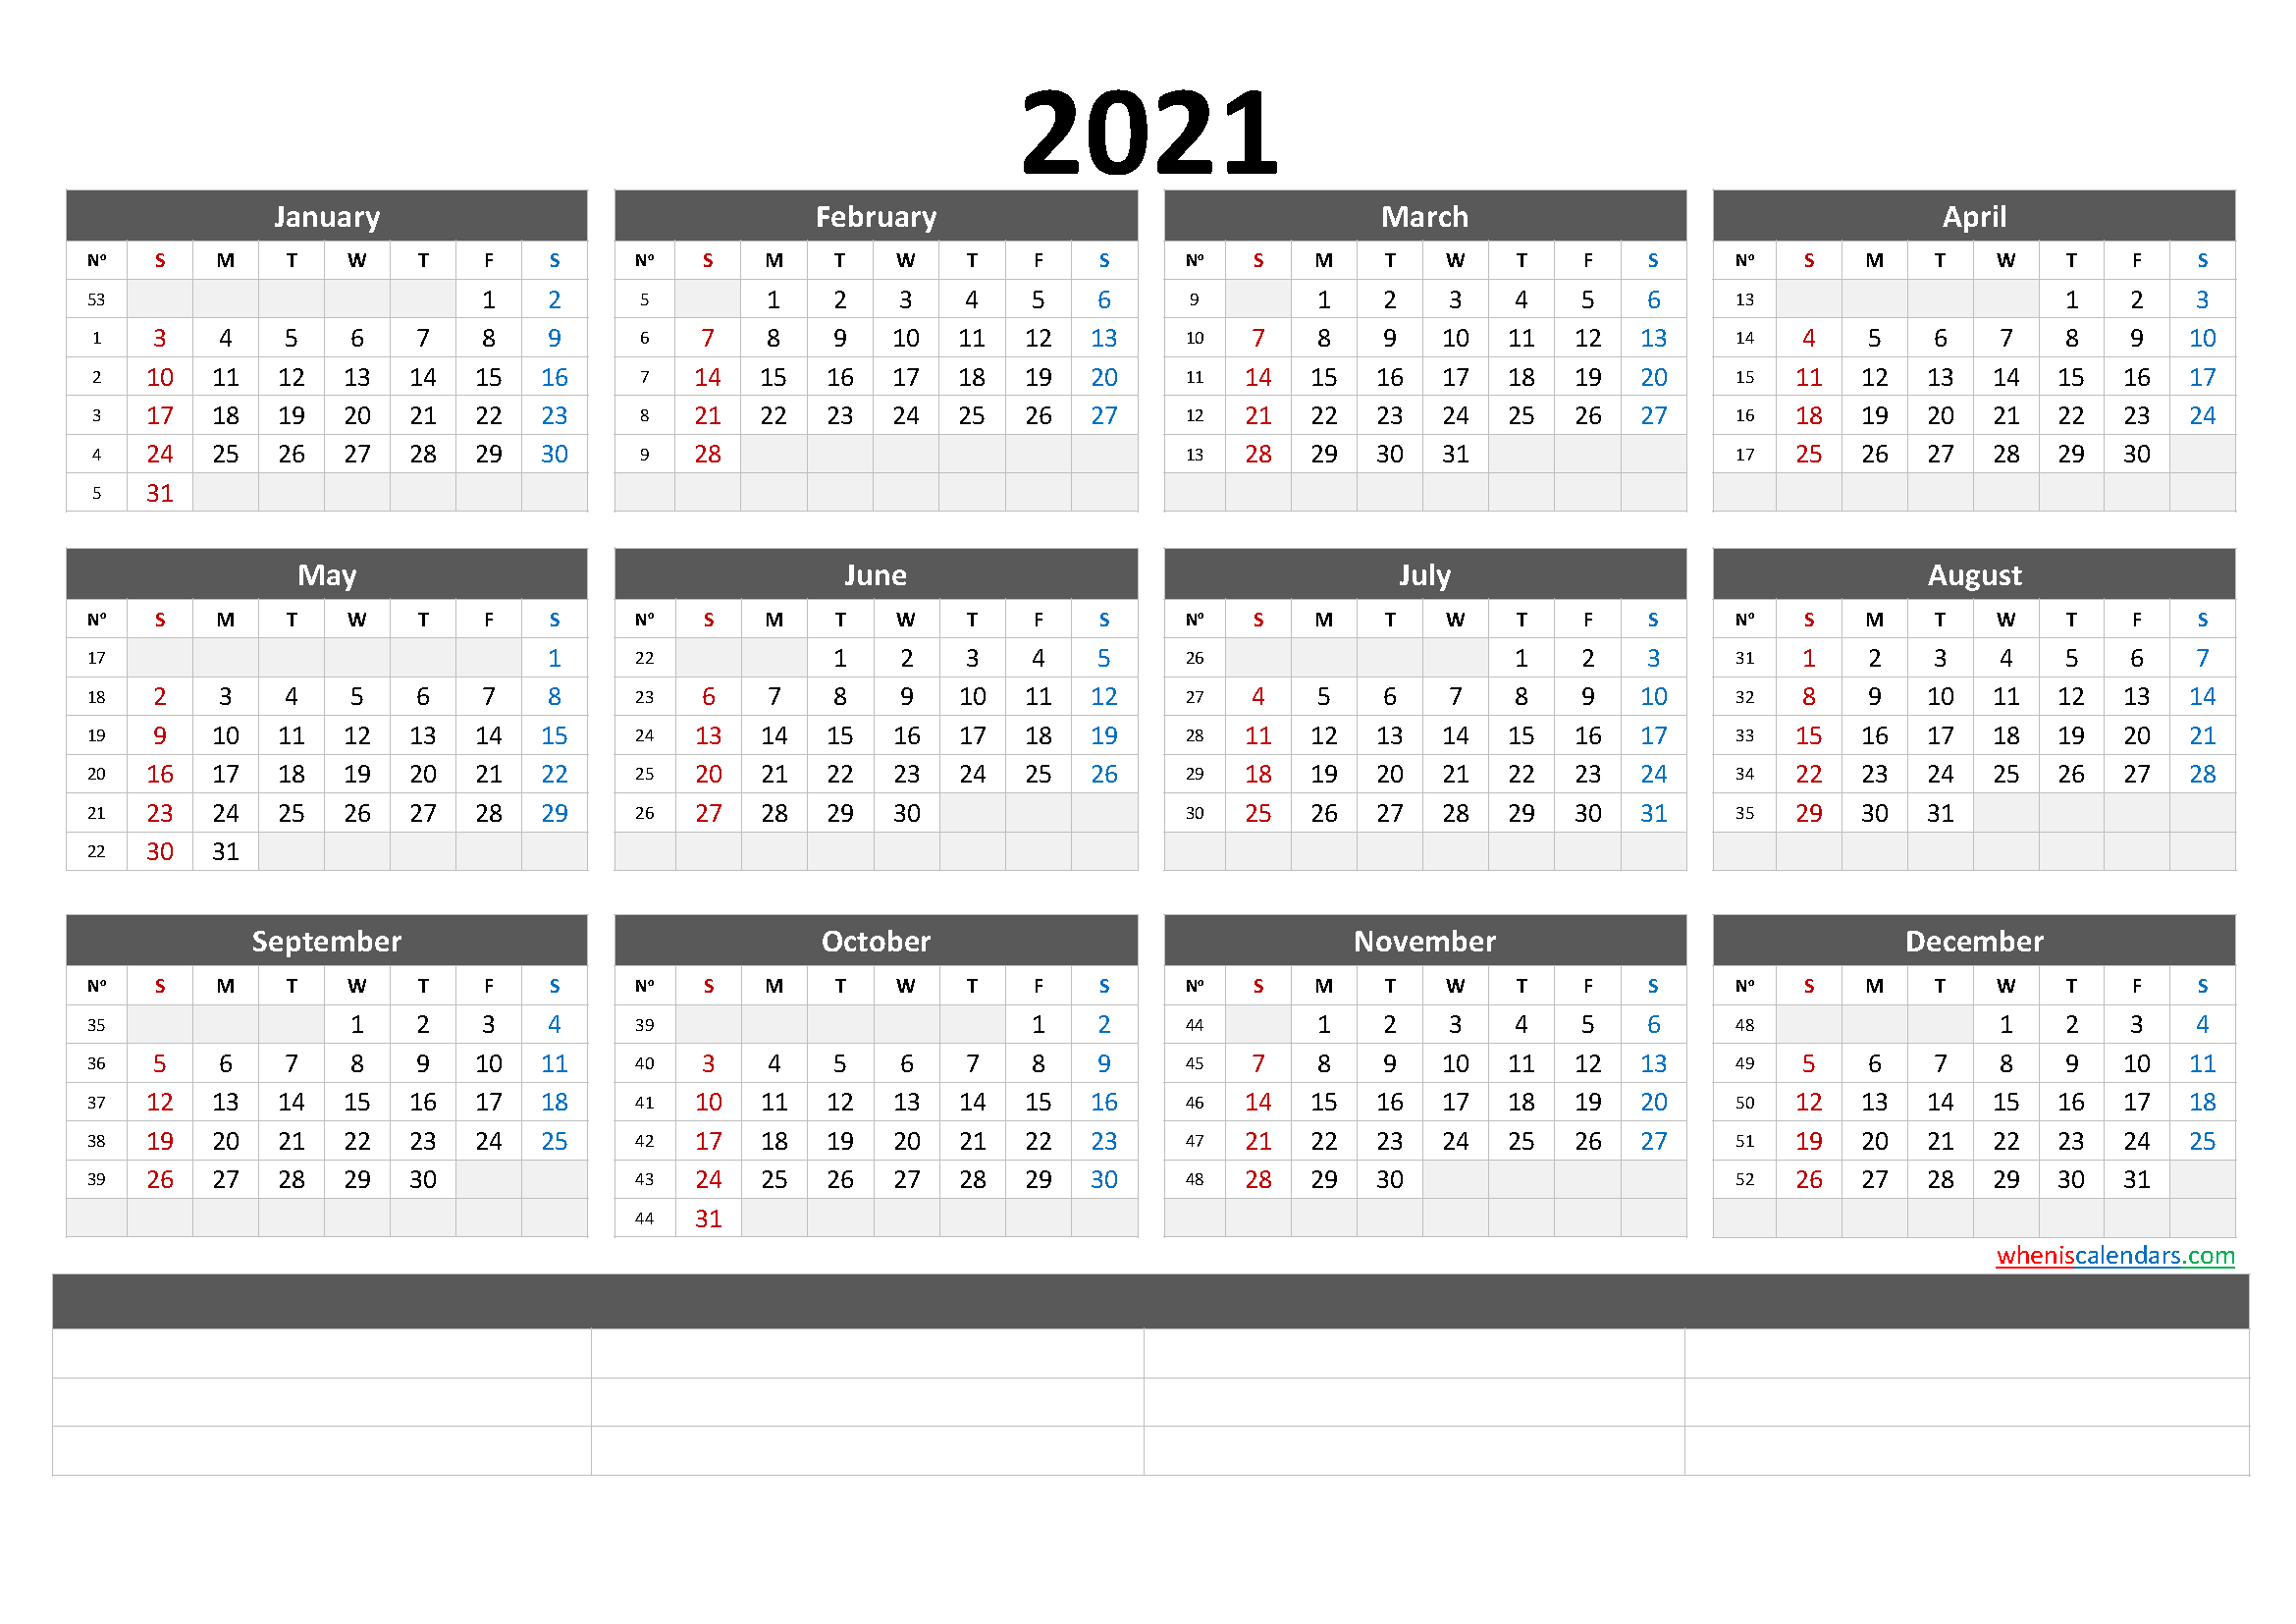 Free Printable 2021 Calendar by Month